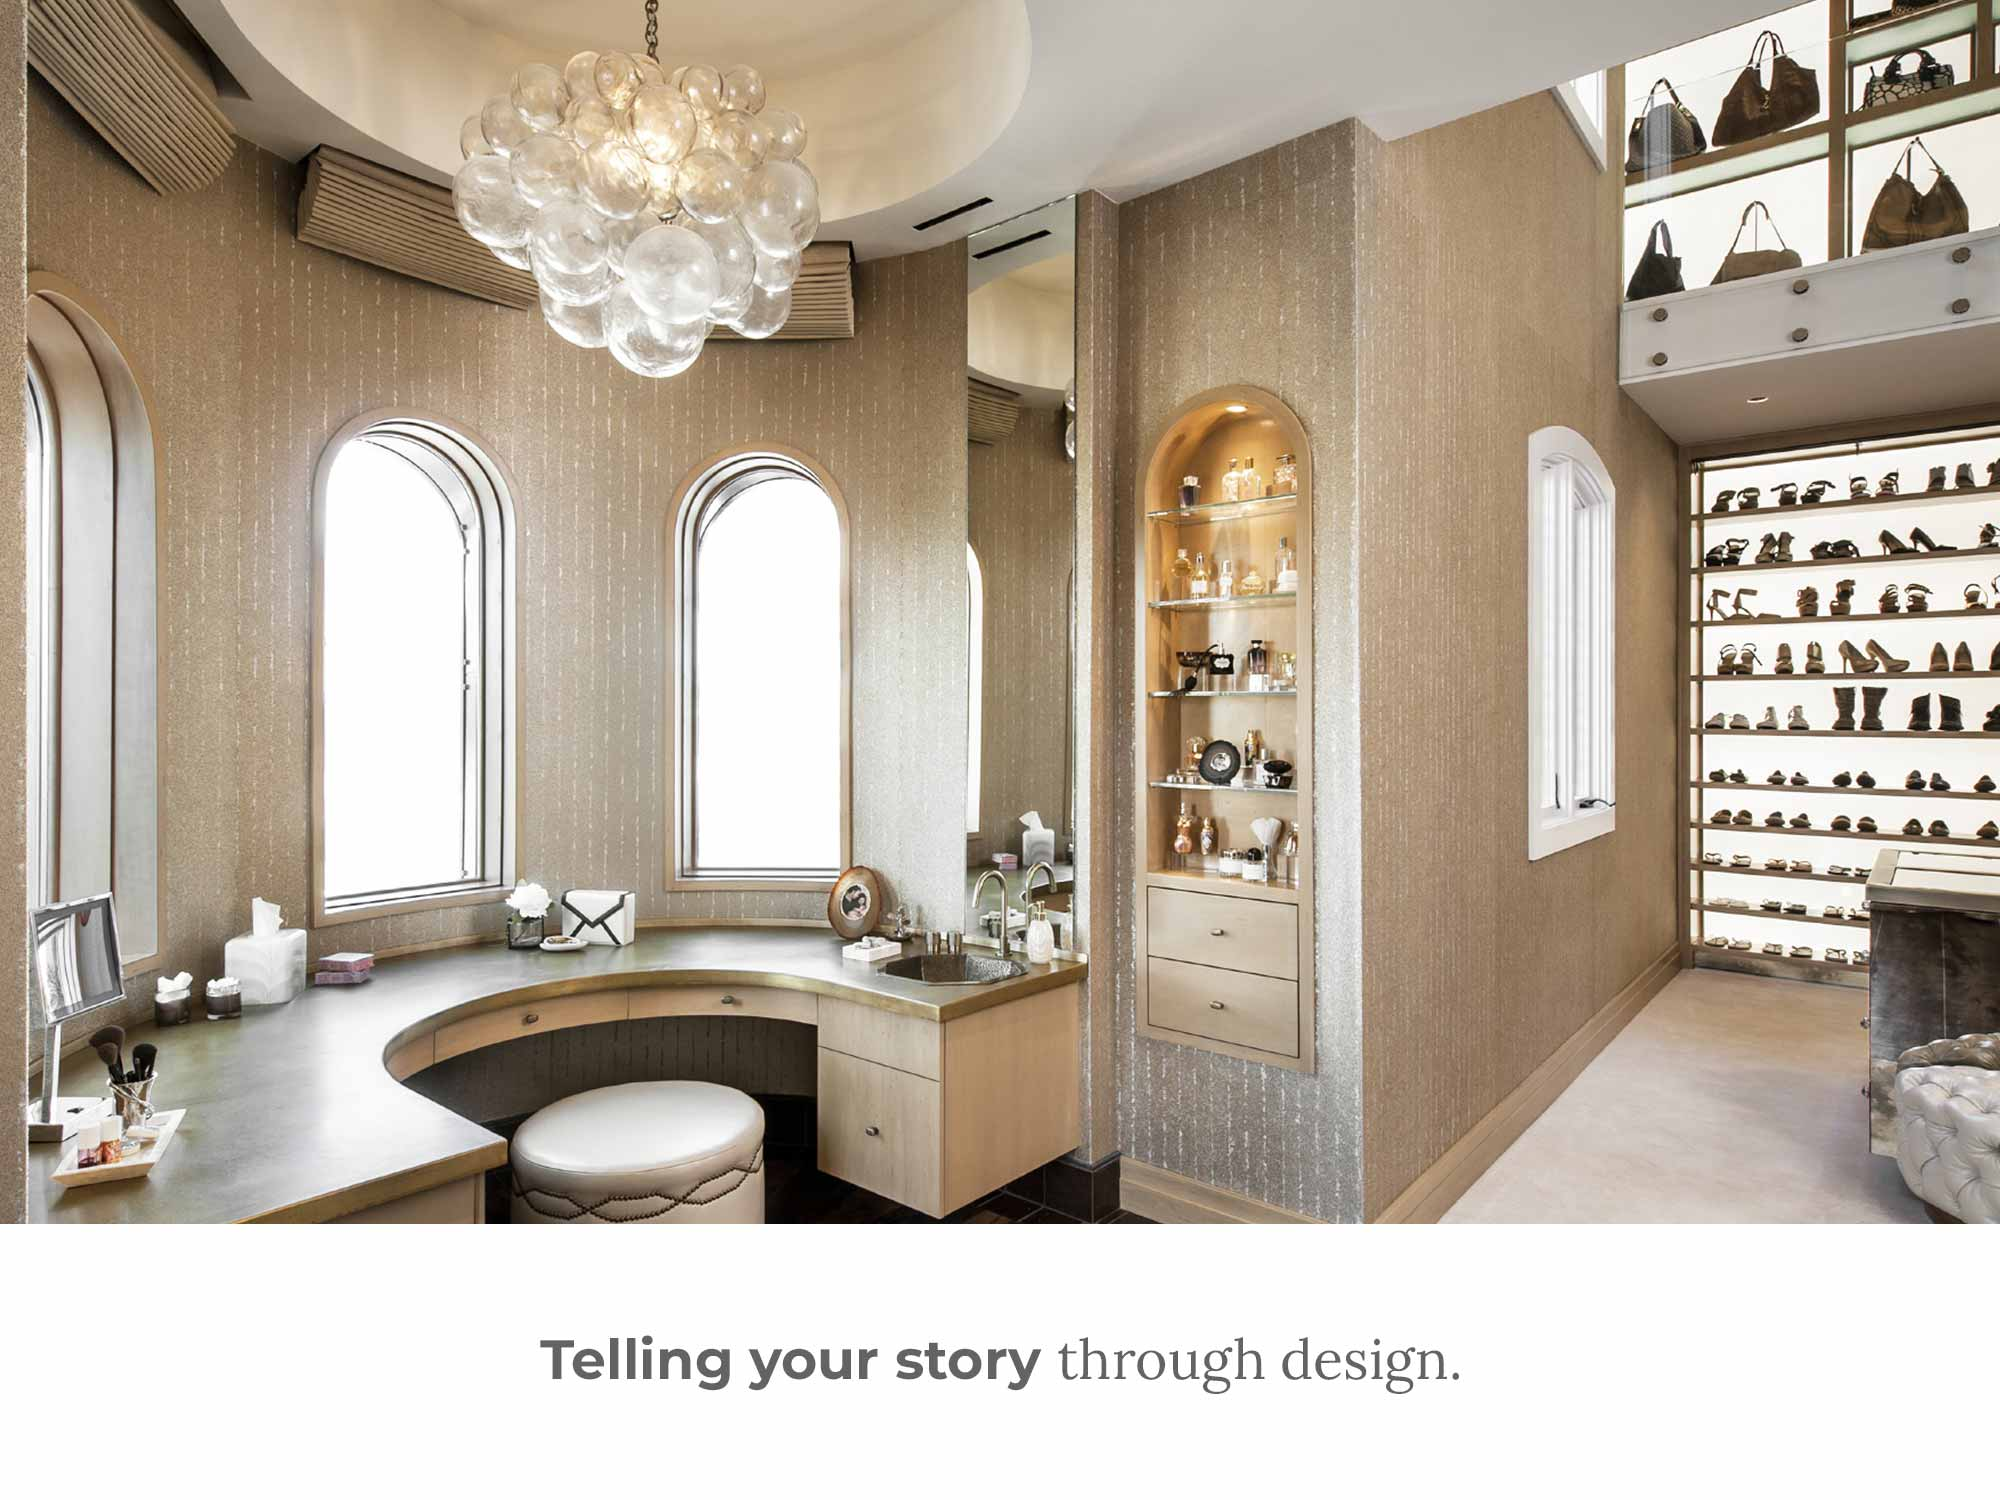 Angelica Henry Design Is An Industry Leading Interior Design Firm Renowned  For Their Distinctive And Sophisticated Designs. Our Trademark Interiors  Showcase ...